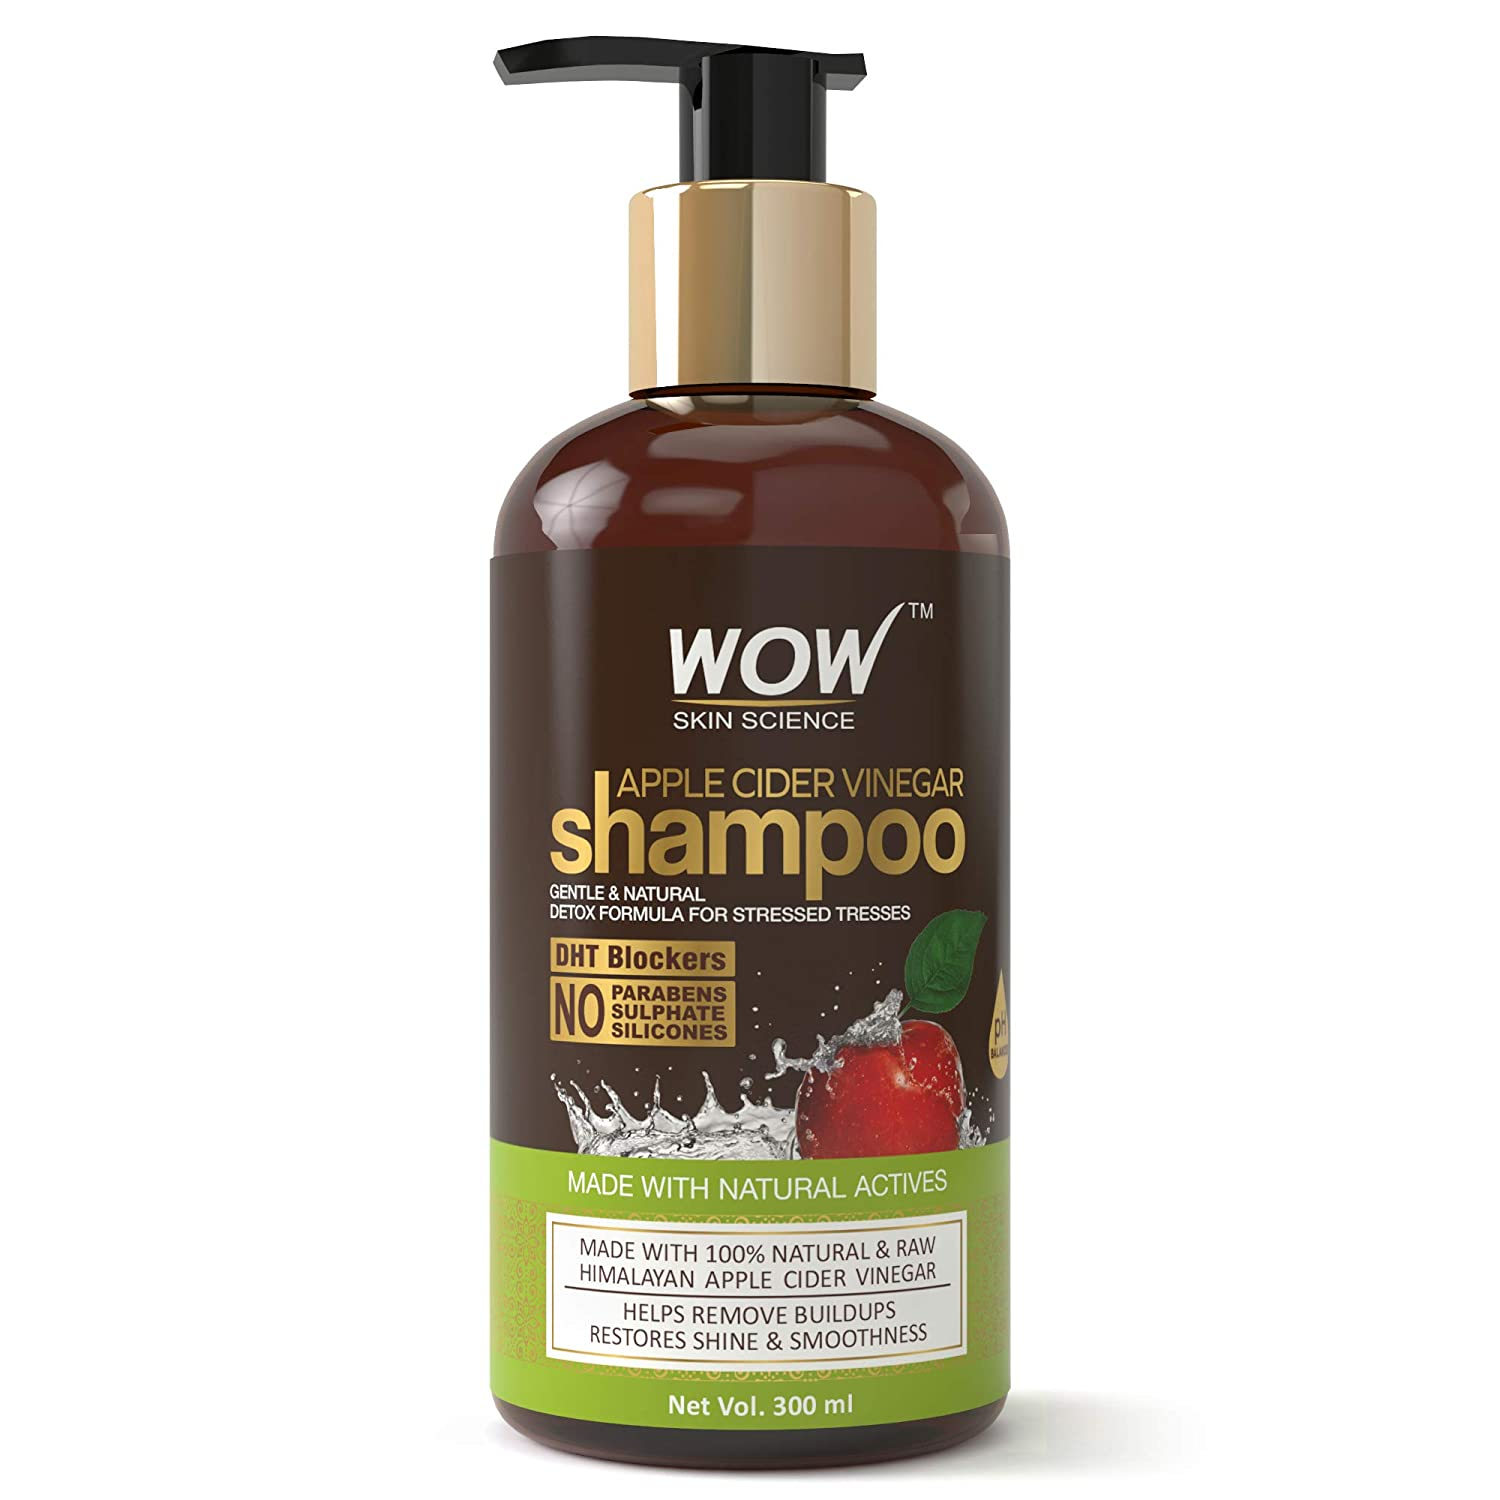 WOW Skin Science Apple Cider Vinegar Shampoo - 300ml